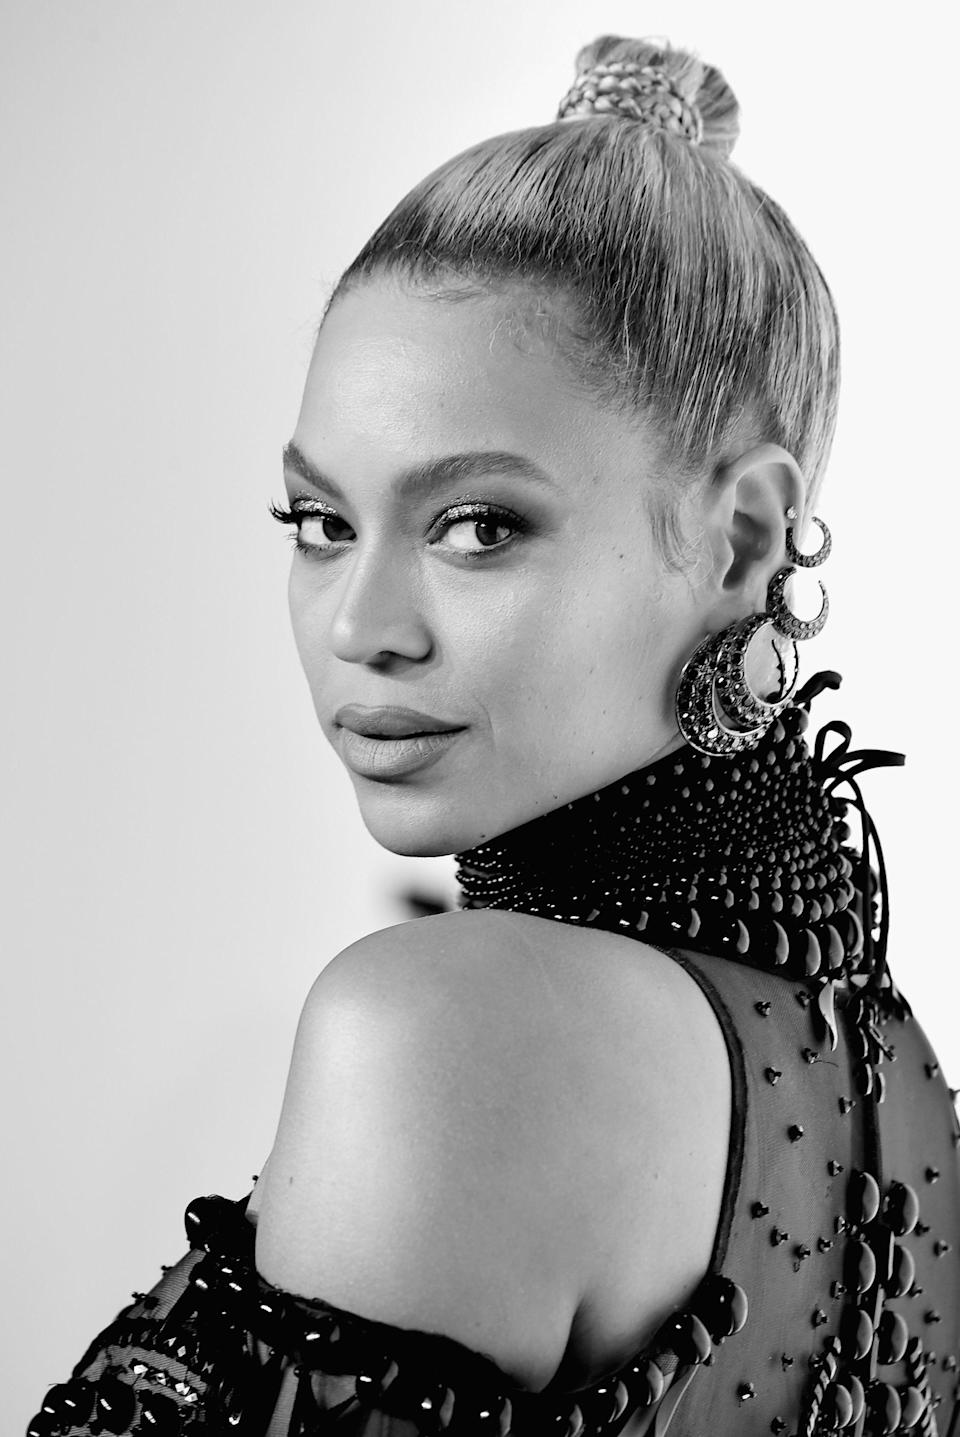 <p>There is little new to observe about Beyoncé Giselle Knowles-Carter, arguably the most powerful female celebrity in the world. Celebrated musician, businesswoman and activist, in her spare time she makes Jay-Z look like the luckiest man in the world.</p>